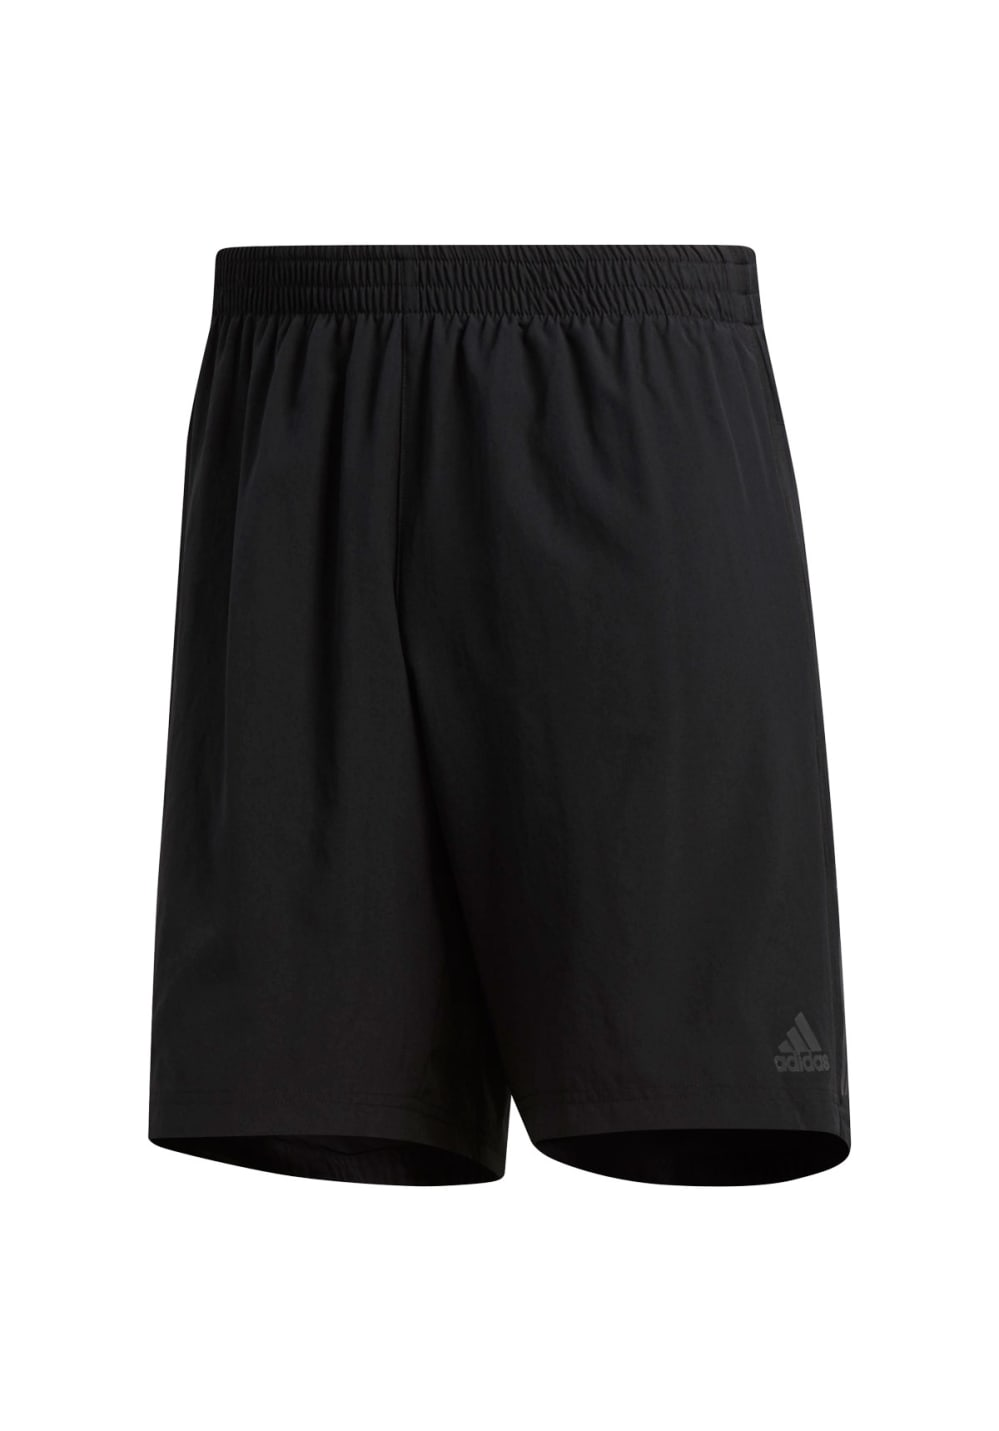 819d62de adidas Own the Run Two-in-One Shorts - Running trousers for Men - Black